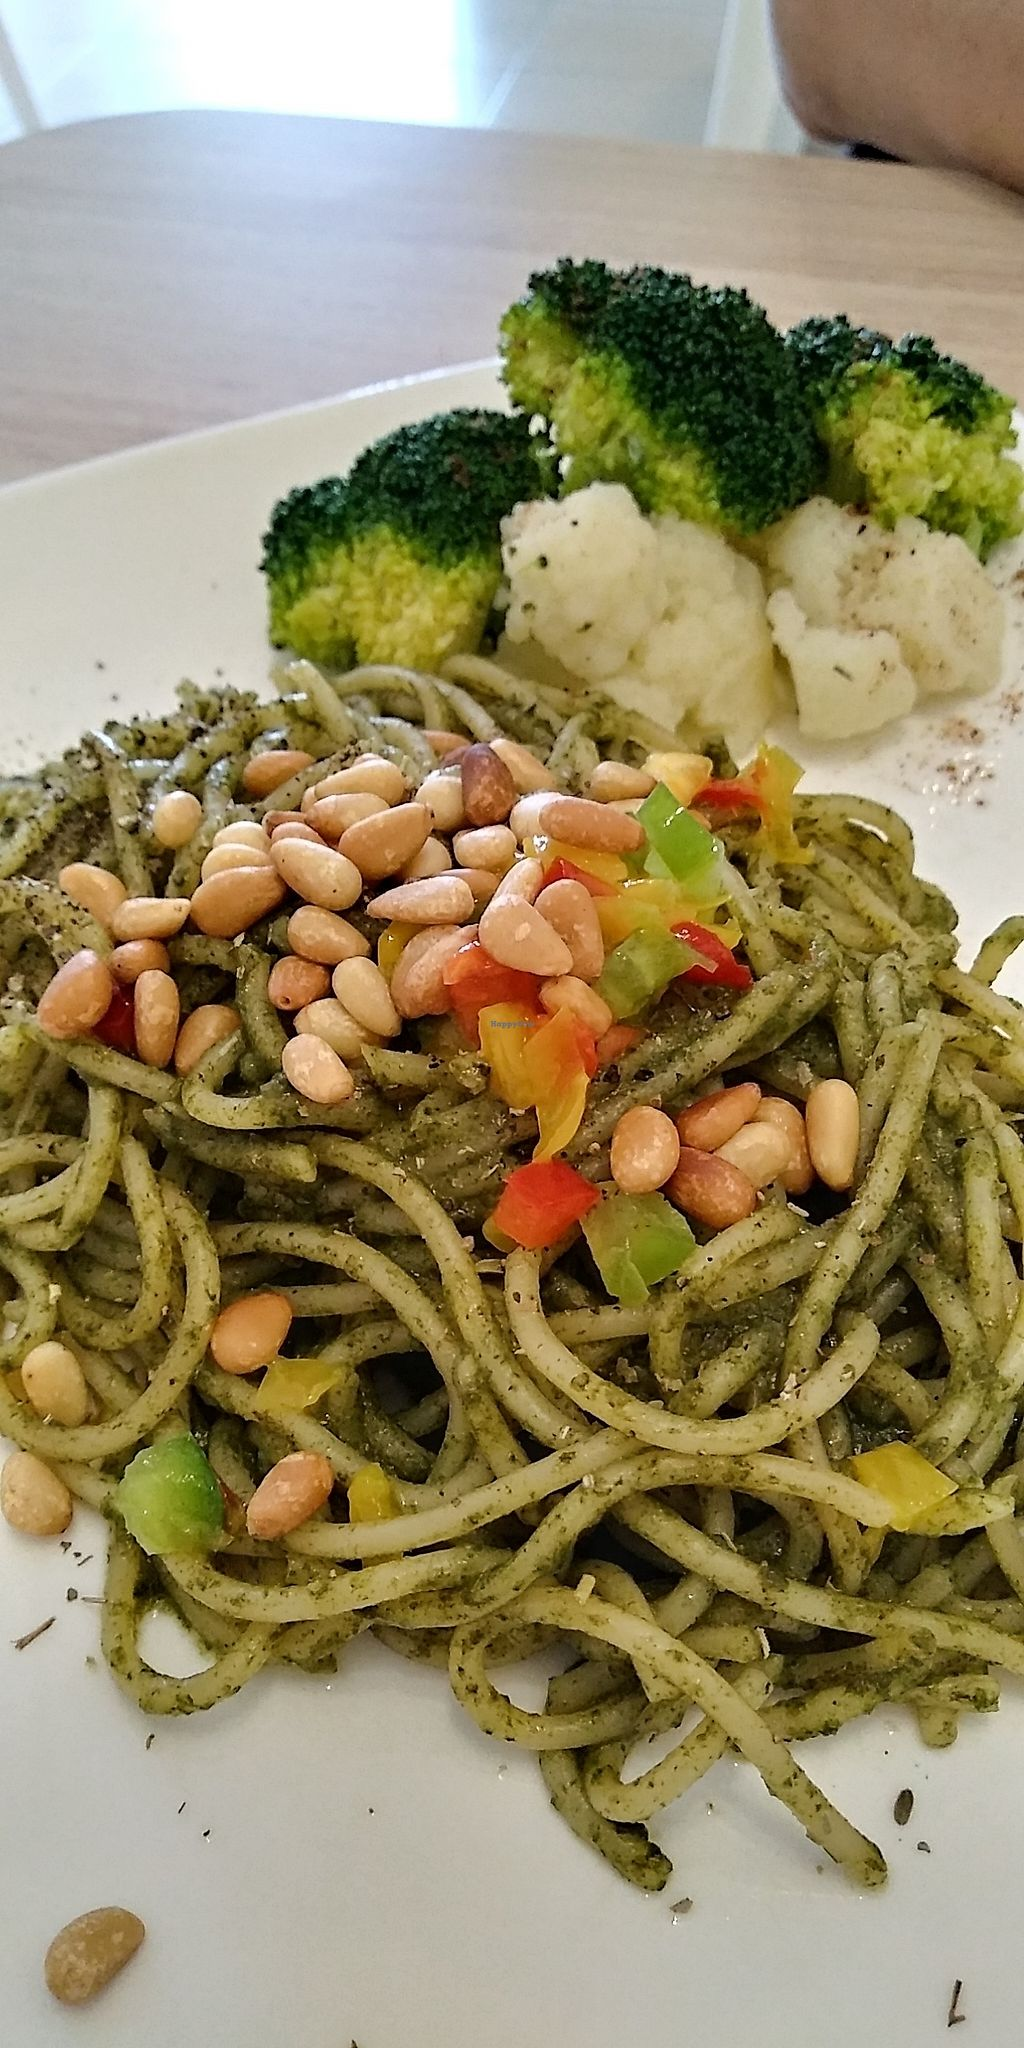 """Photo of The Leaf Healthy House  by <a href=""""/members/profile/audreyho"""">audreyho</a> <br/>3/2/2018 Basil & pine nut spaghetti - RM11.90 <br/> February 3, 2018  - <a href='/contact/abuse/image/27692/354306'>Report</a>"""